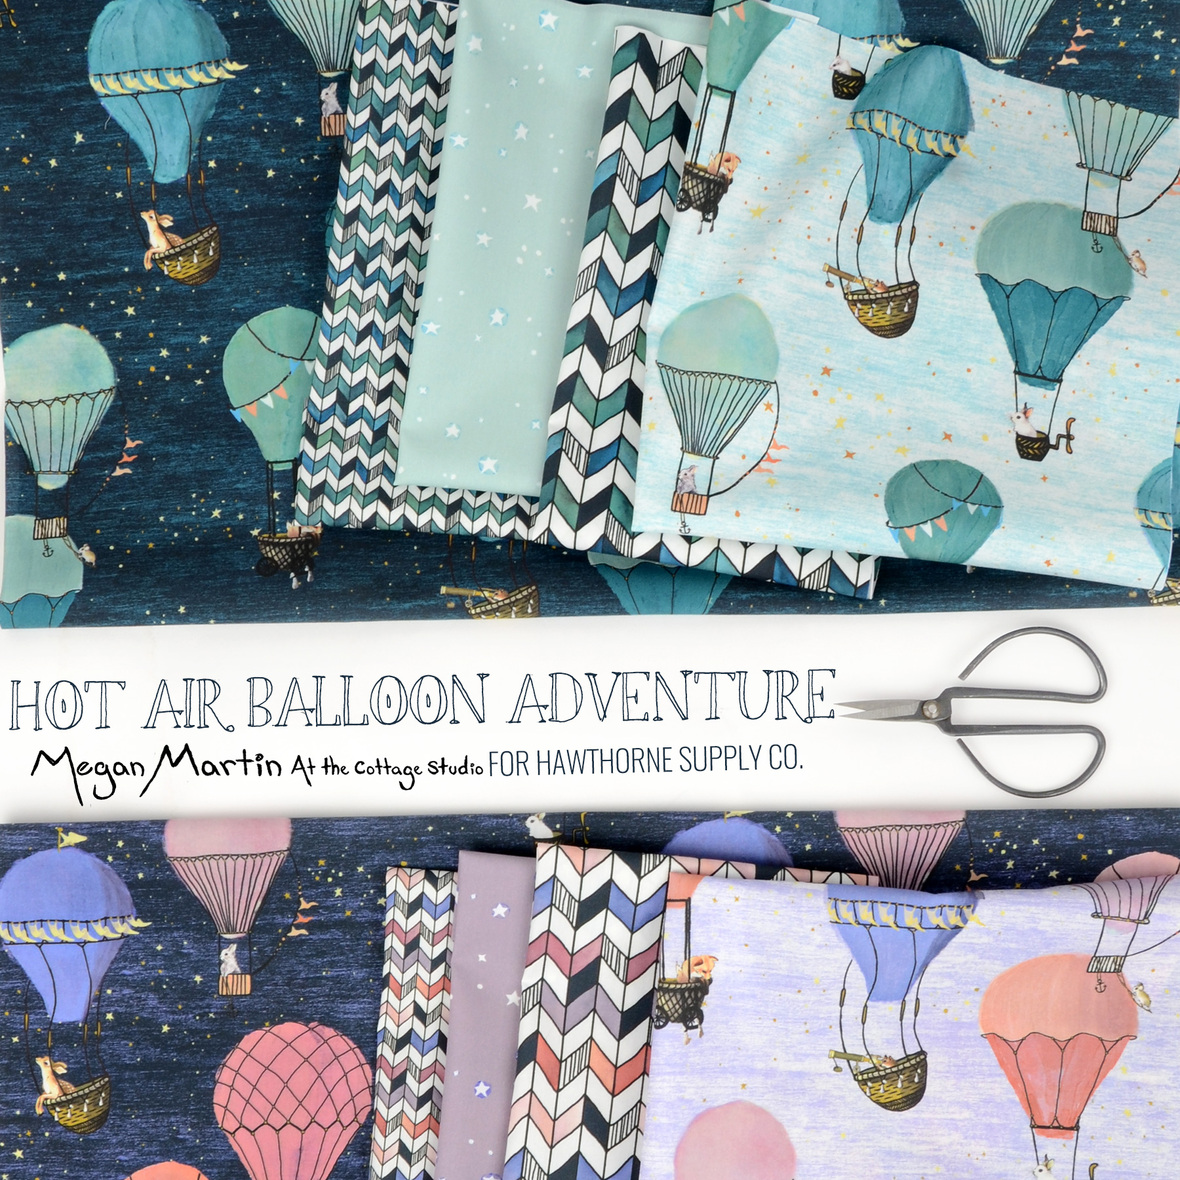 Hot-Air-Balloon-Adventure-Megan-Martin-at-the-Cottage-Studio-at-Hawthorne-Supply-Co.